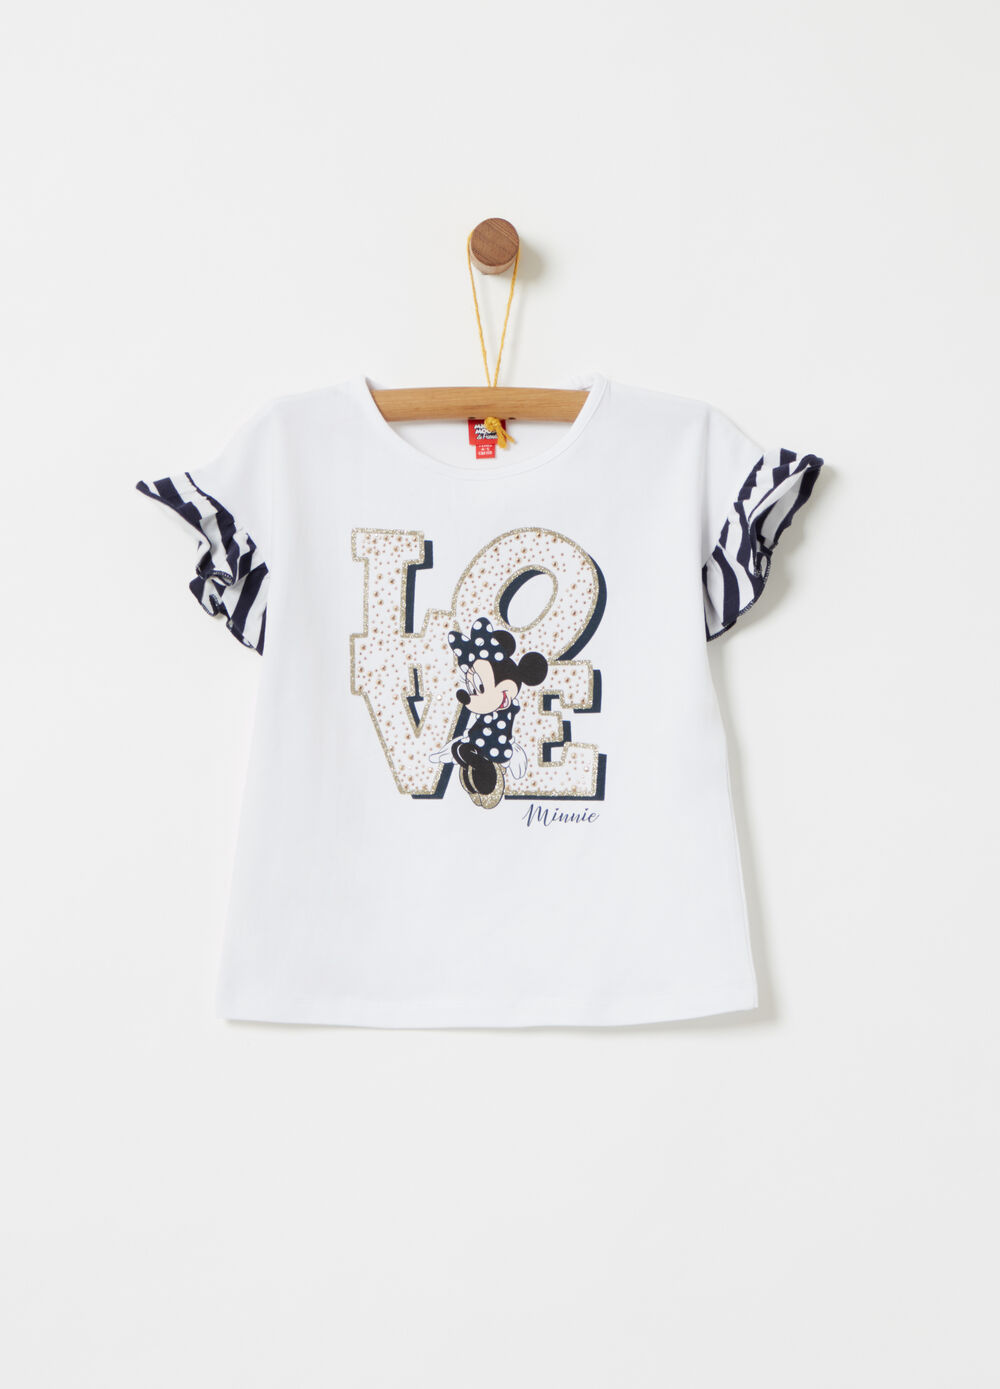 T-shirt stampa Disney Minnie e borchiette